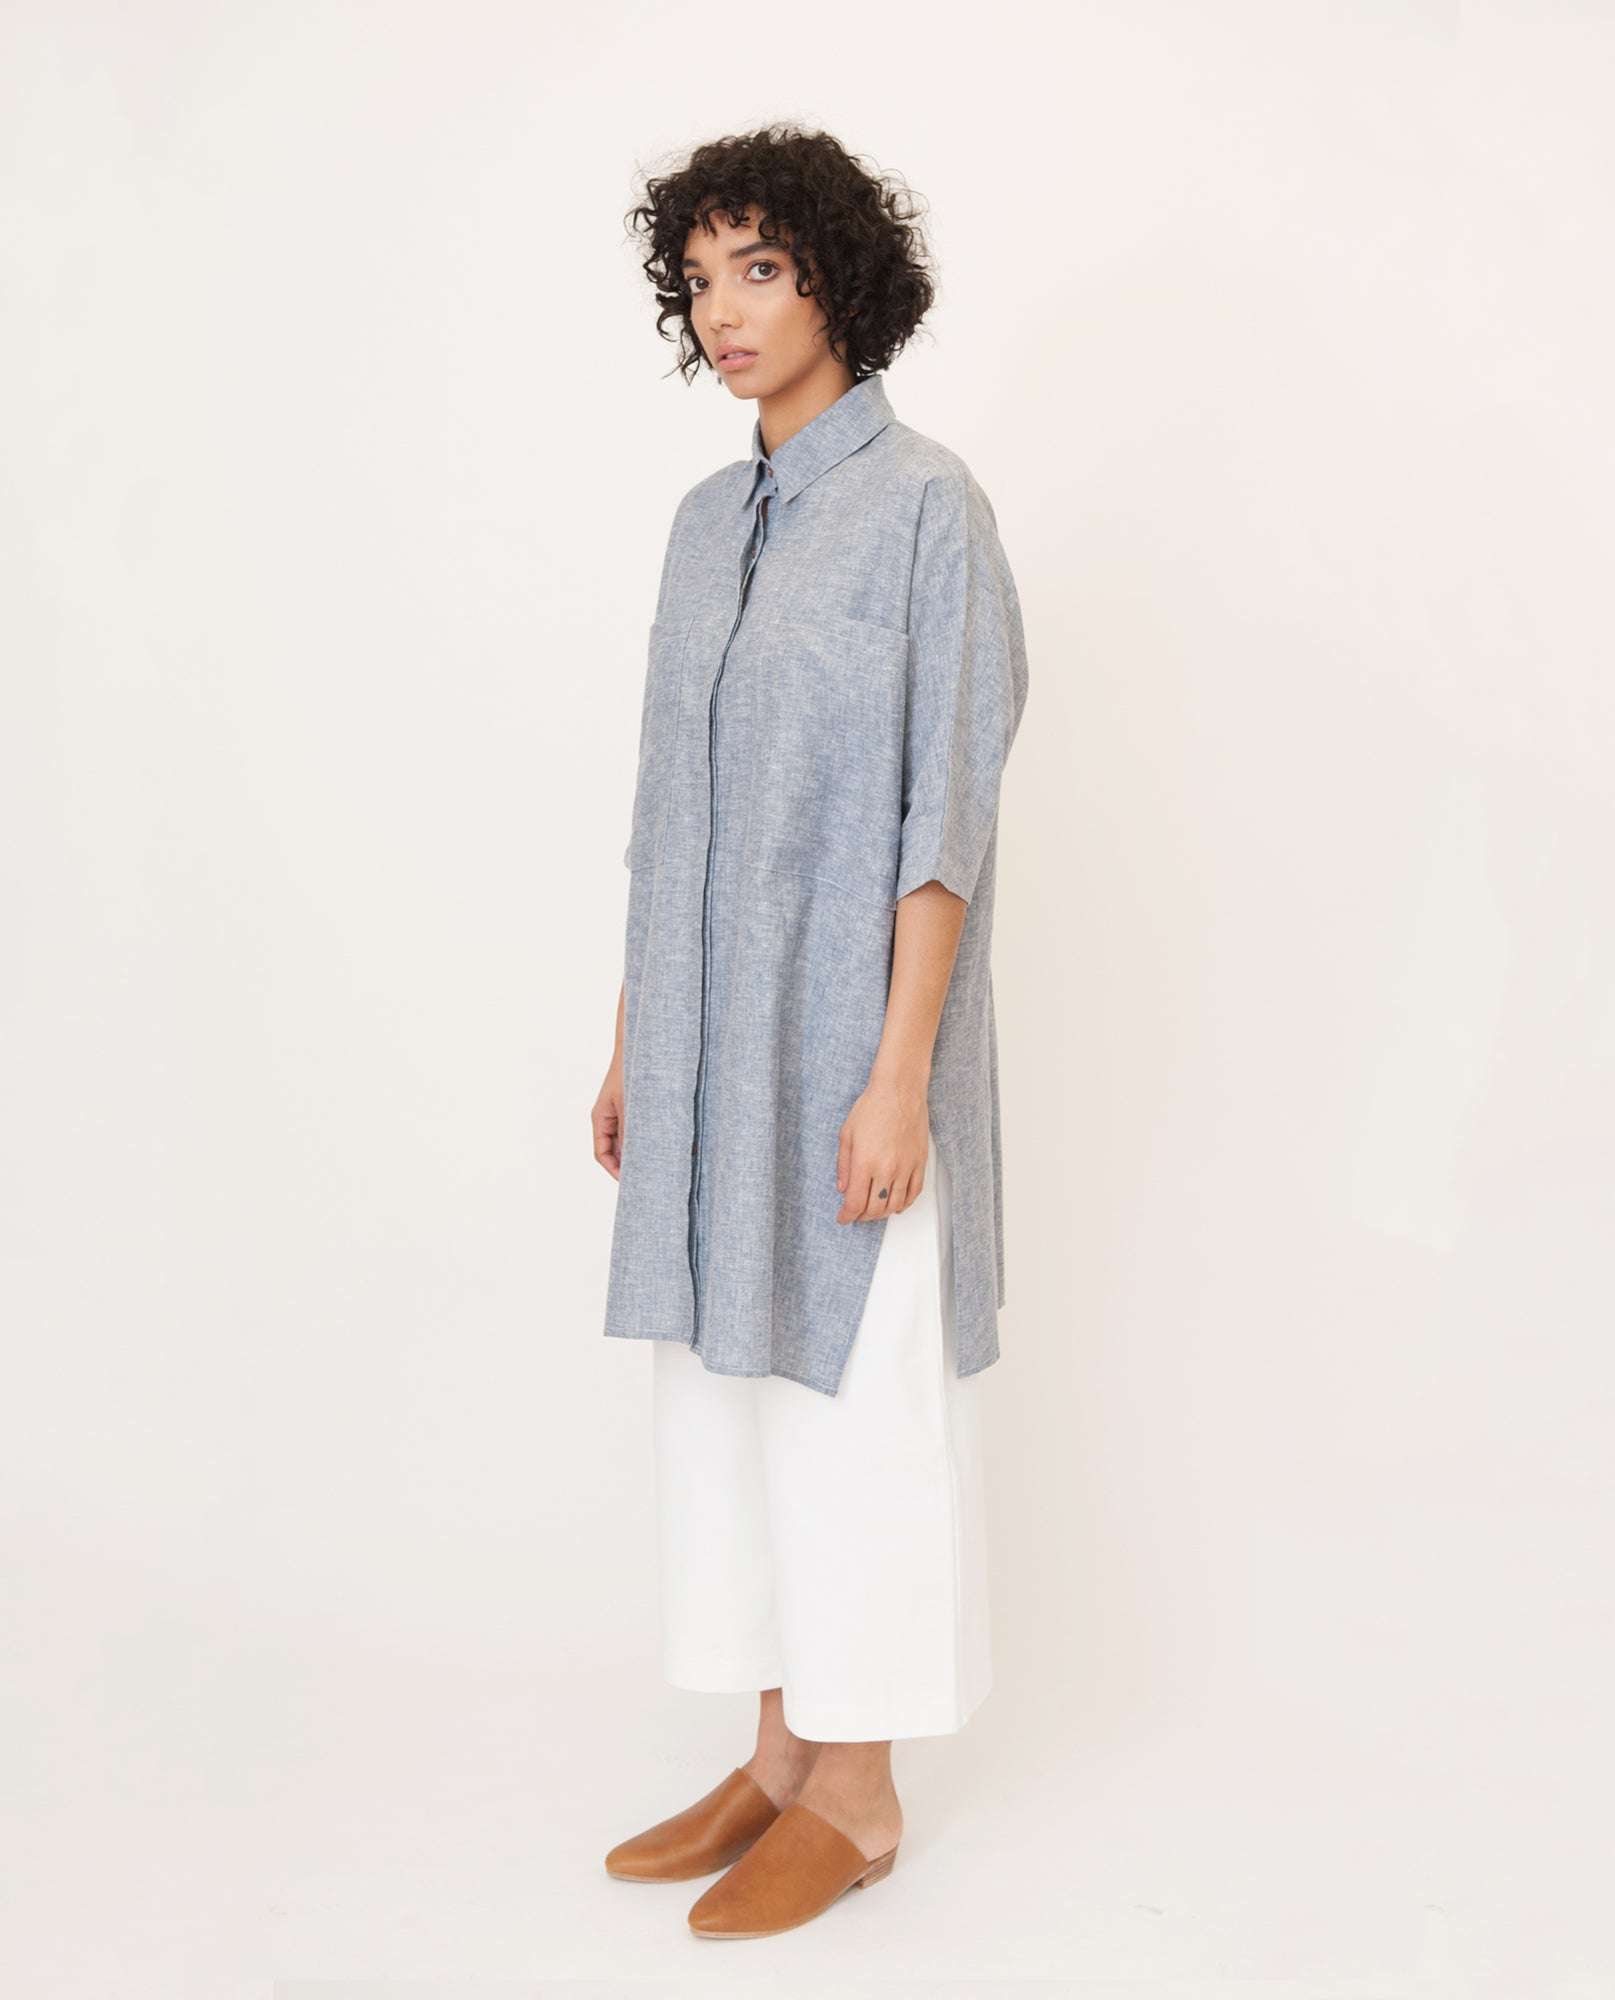 YVONNE-JANE Hemp And Organic Cotton Shirt In Navy Speckle